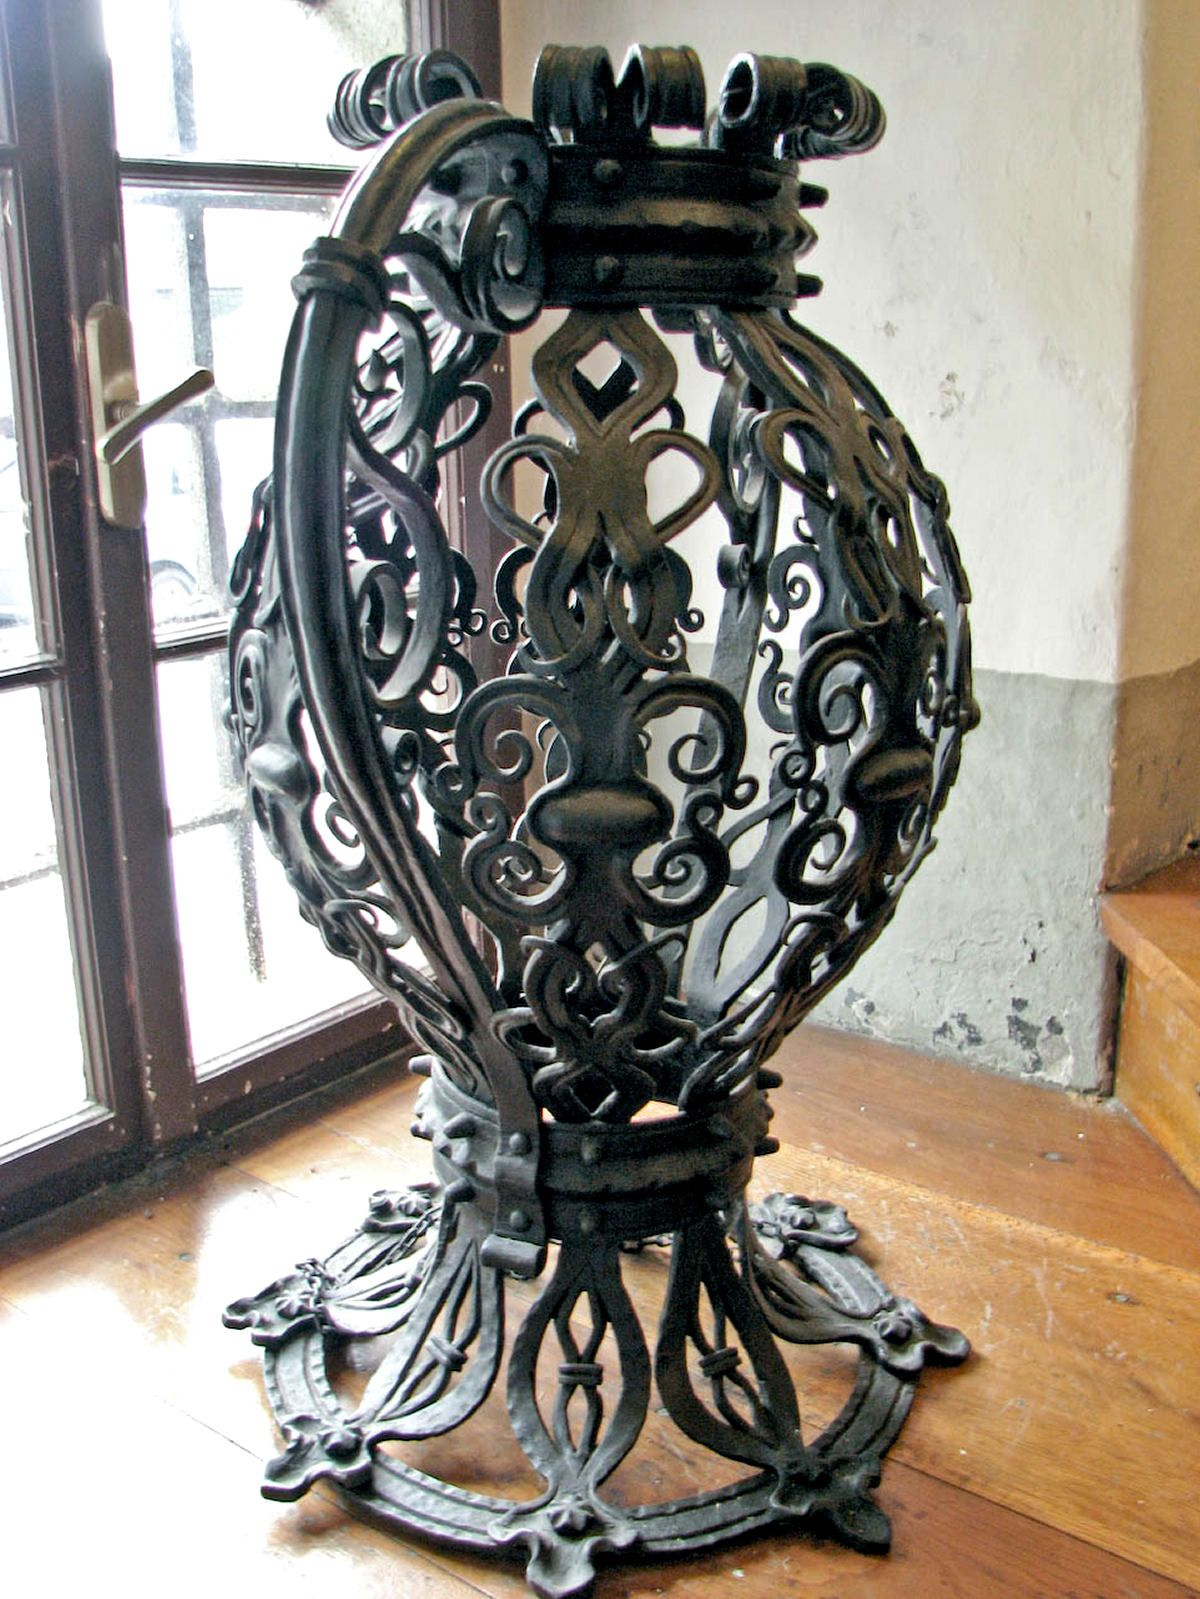 Elegant Ornate Ironwork U0027jugu0027 From The Iron Forging Museum In Kropa Is Located In  The Central Part Of The Square In Klinaru0027s House. It Was Opened In 1952 As  The ...